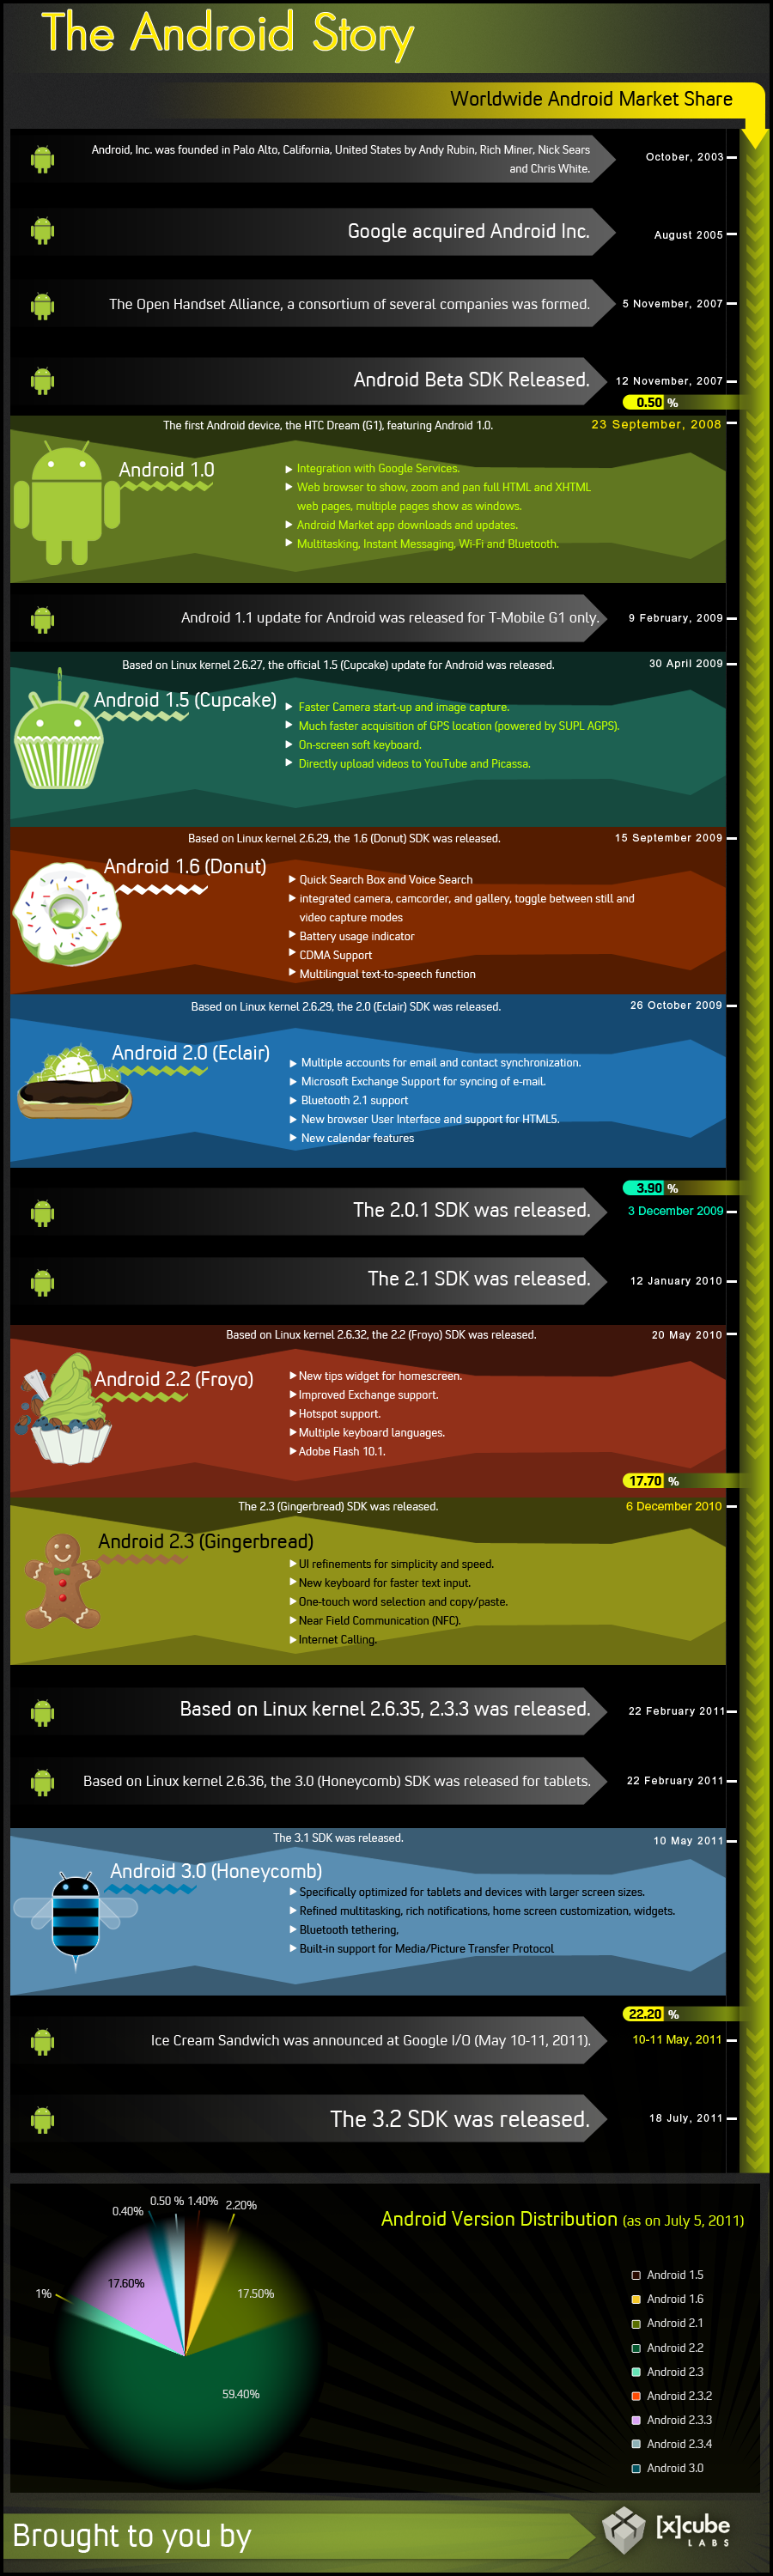 The Android Story. [INFOGRAPHIC]